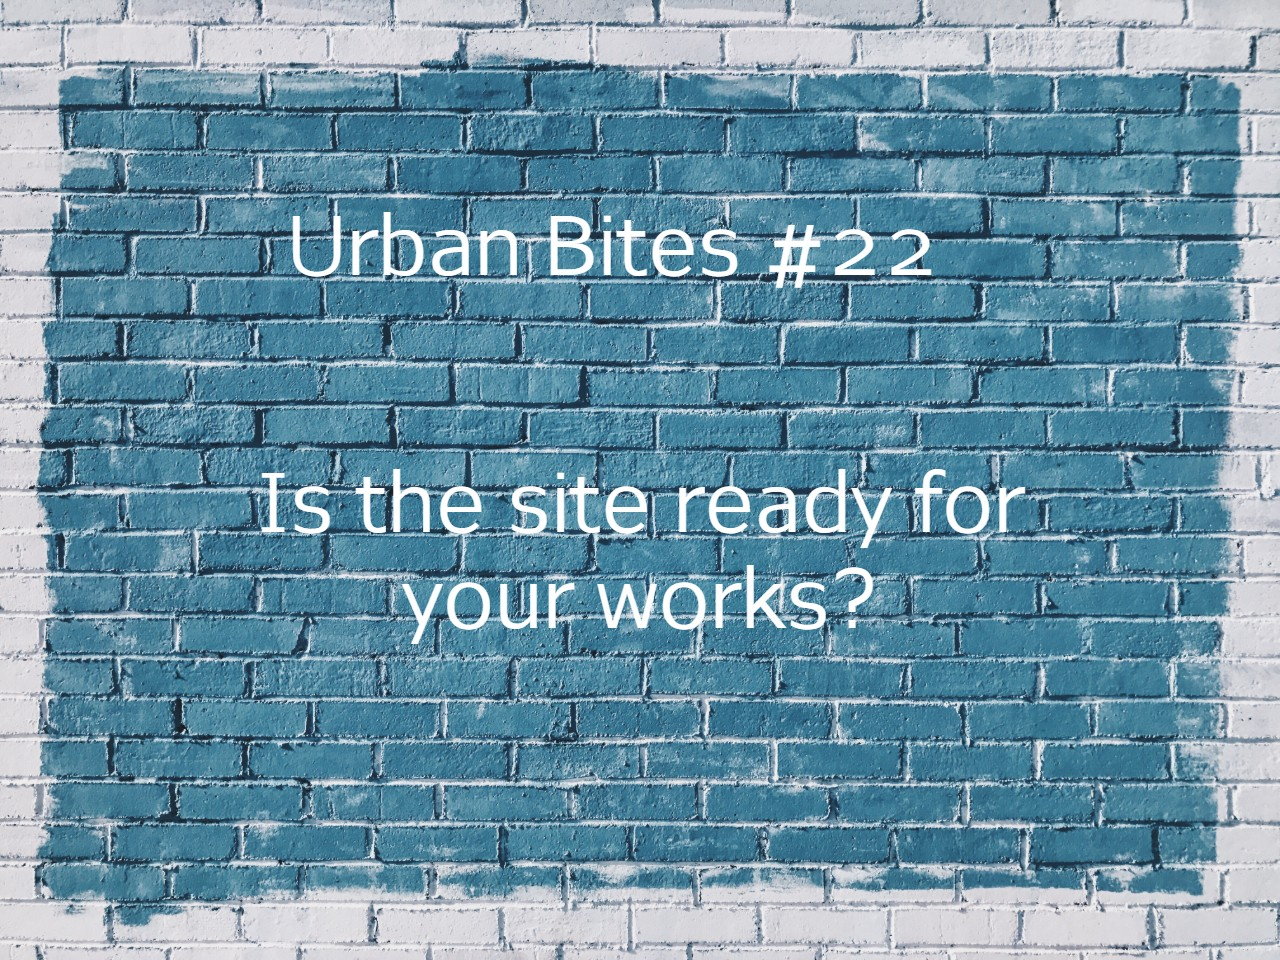 Urban Bites #22 Is the site ready for your works